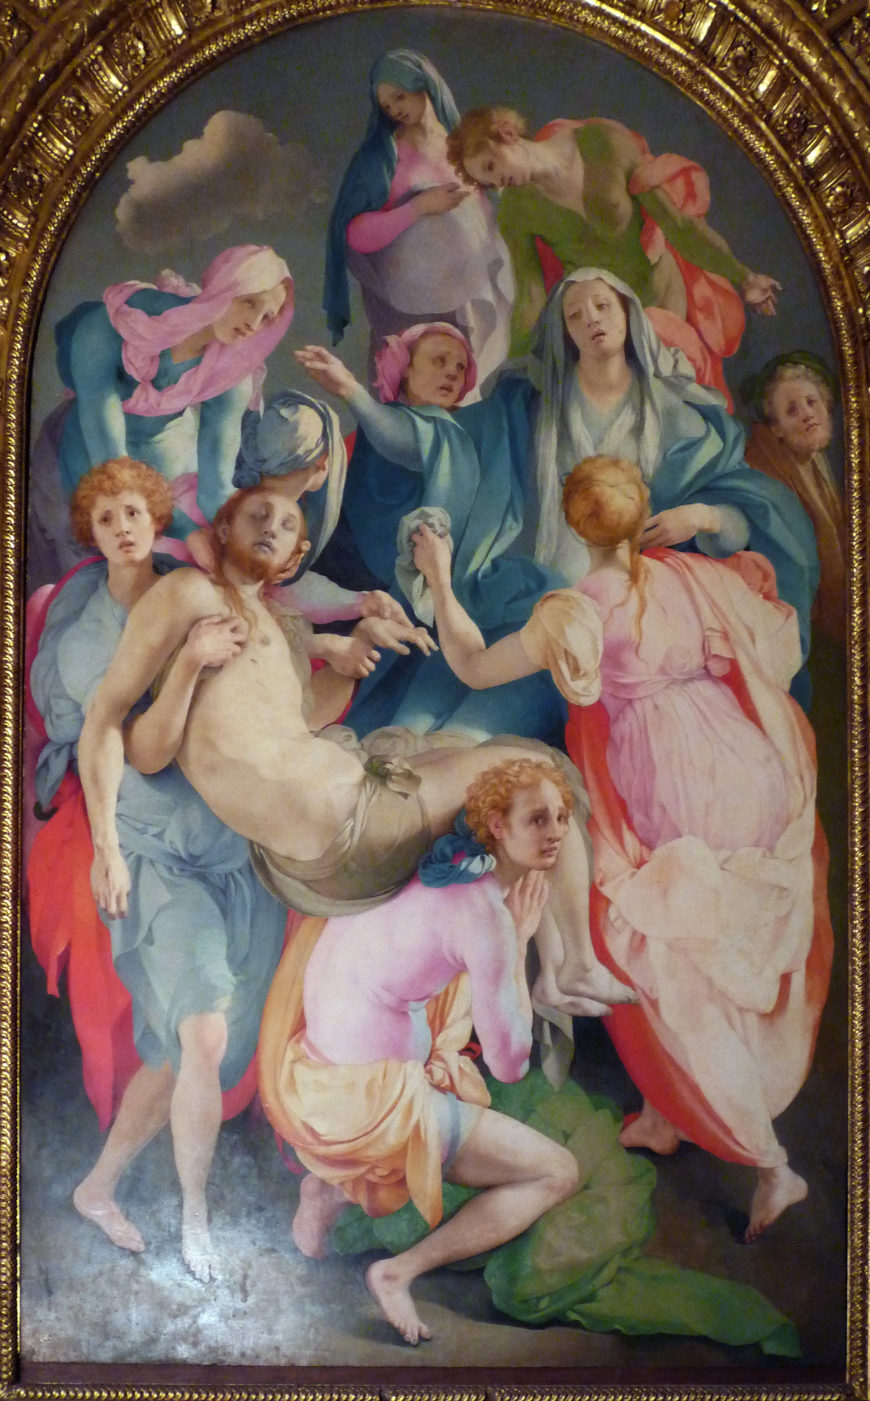 Pontormo, Entombment (or Deposition from the Cross), oil on panel, 1525-28, Capponi Chapel, Santa Felicita, Florence